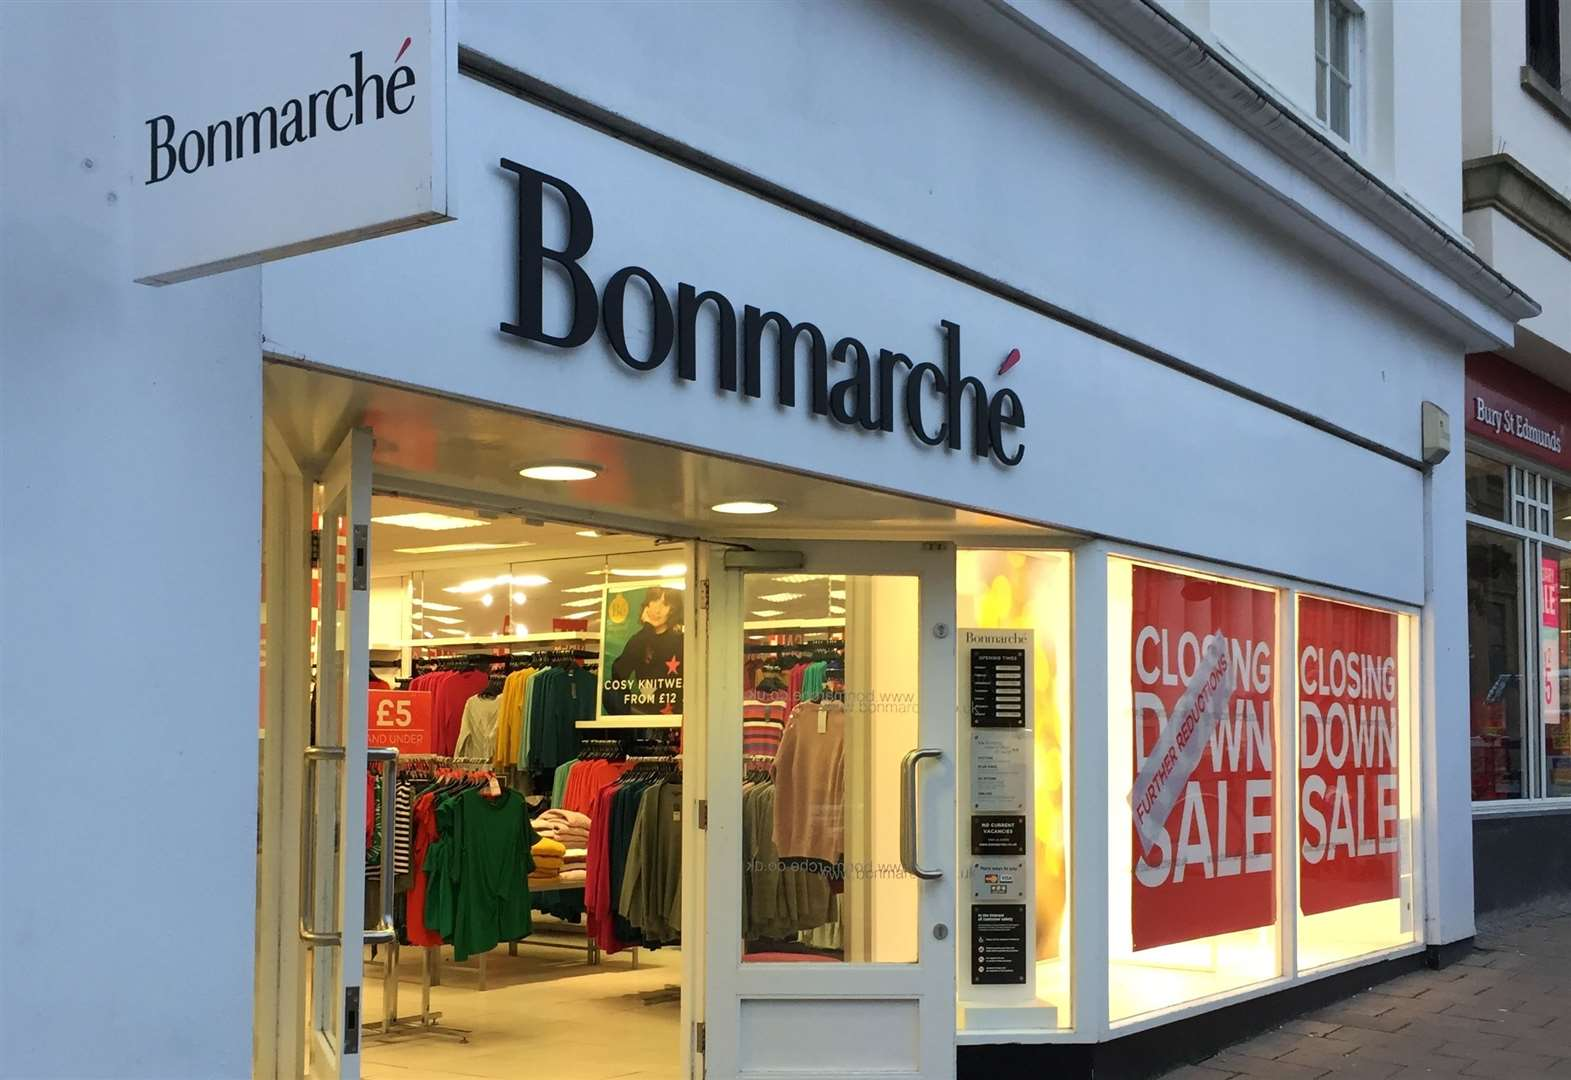 Bonmarche 'under constant assessment' as closing down signs are displayed at Bury St Edmunds store